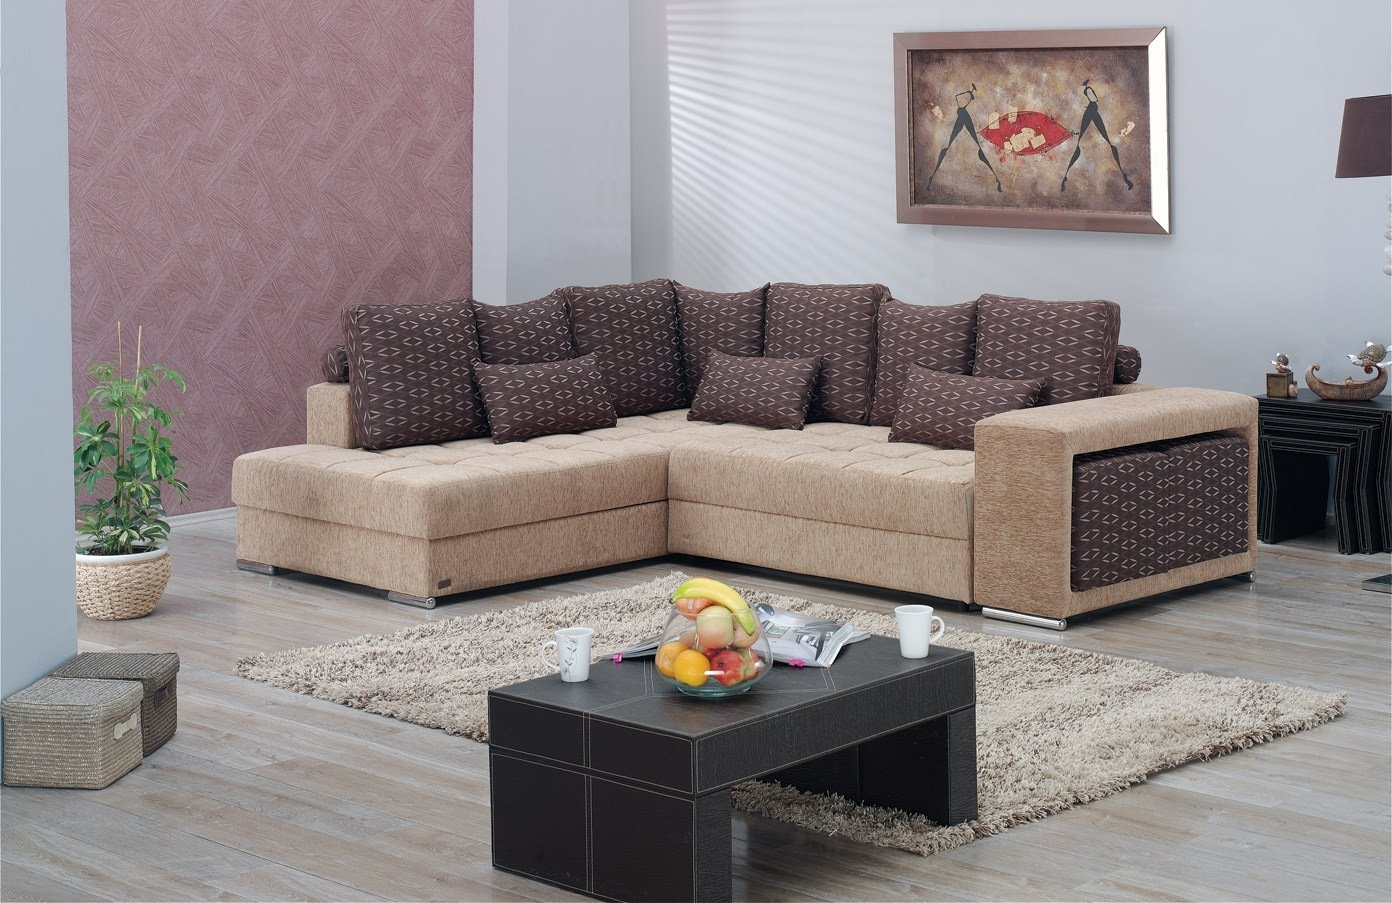 Sectional Sofas In Stock Pertaining To Well Known Sectional Sofa Design: Best Sectional Sofas Los Angeles Sofa (View 6 of 20)